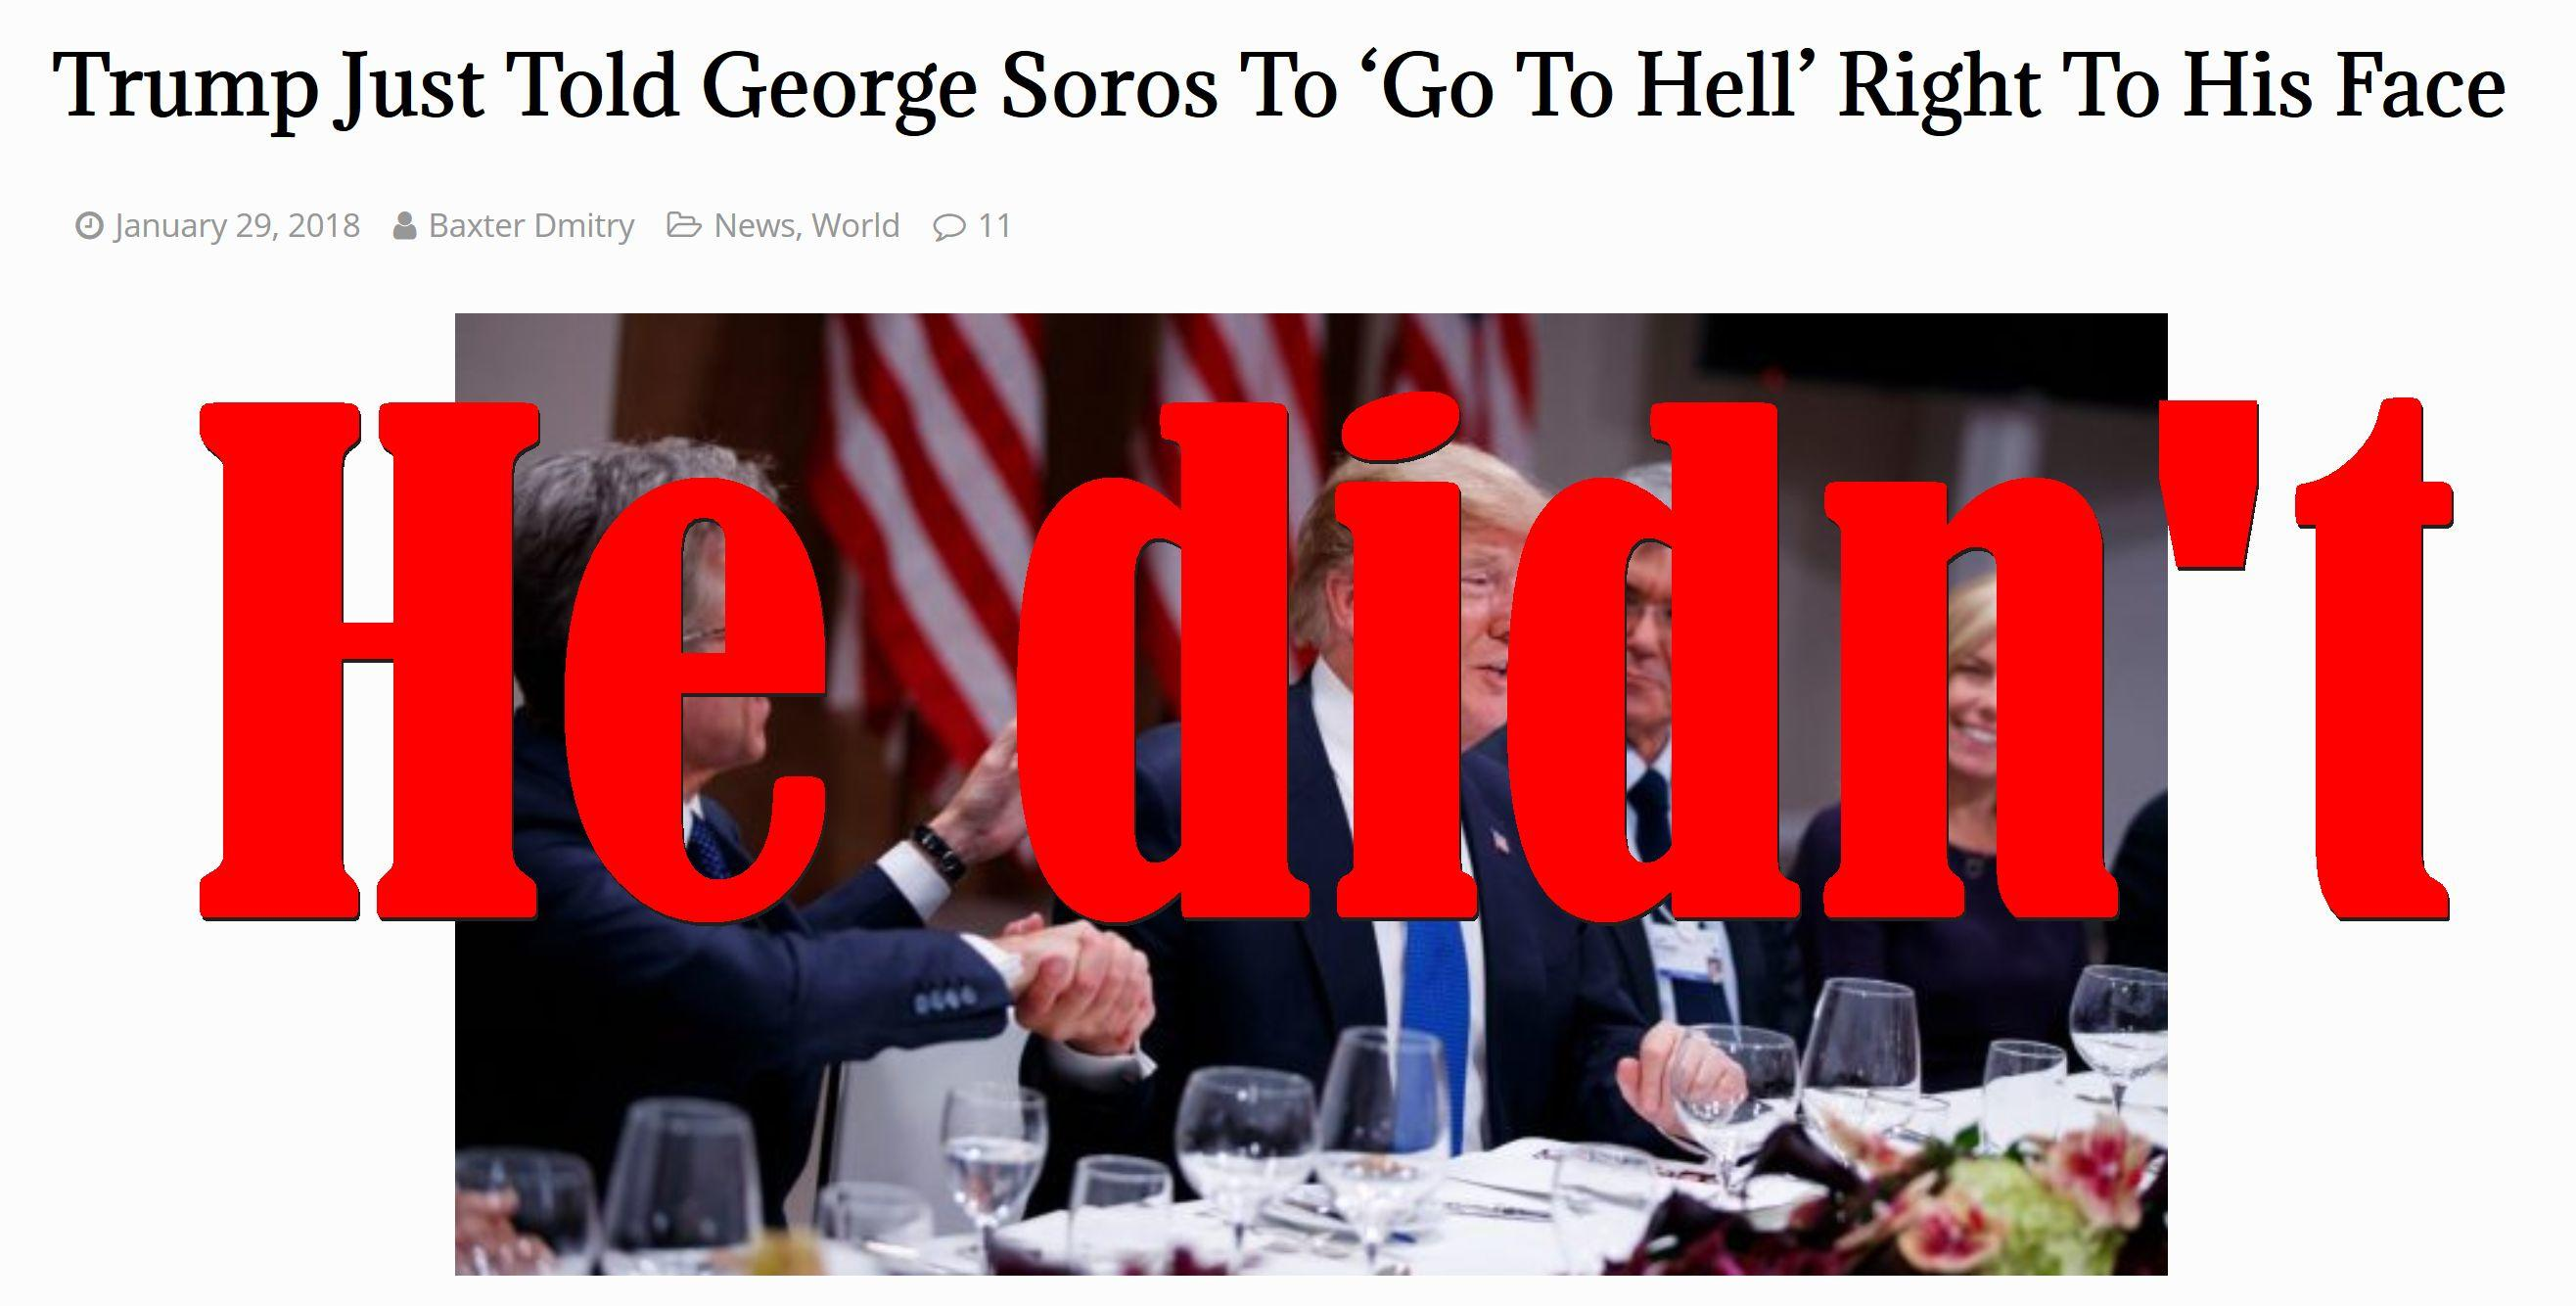 Fake News: Trump Did NOT Tell George Soros To 'Go To Hell' Right To His Face